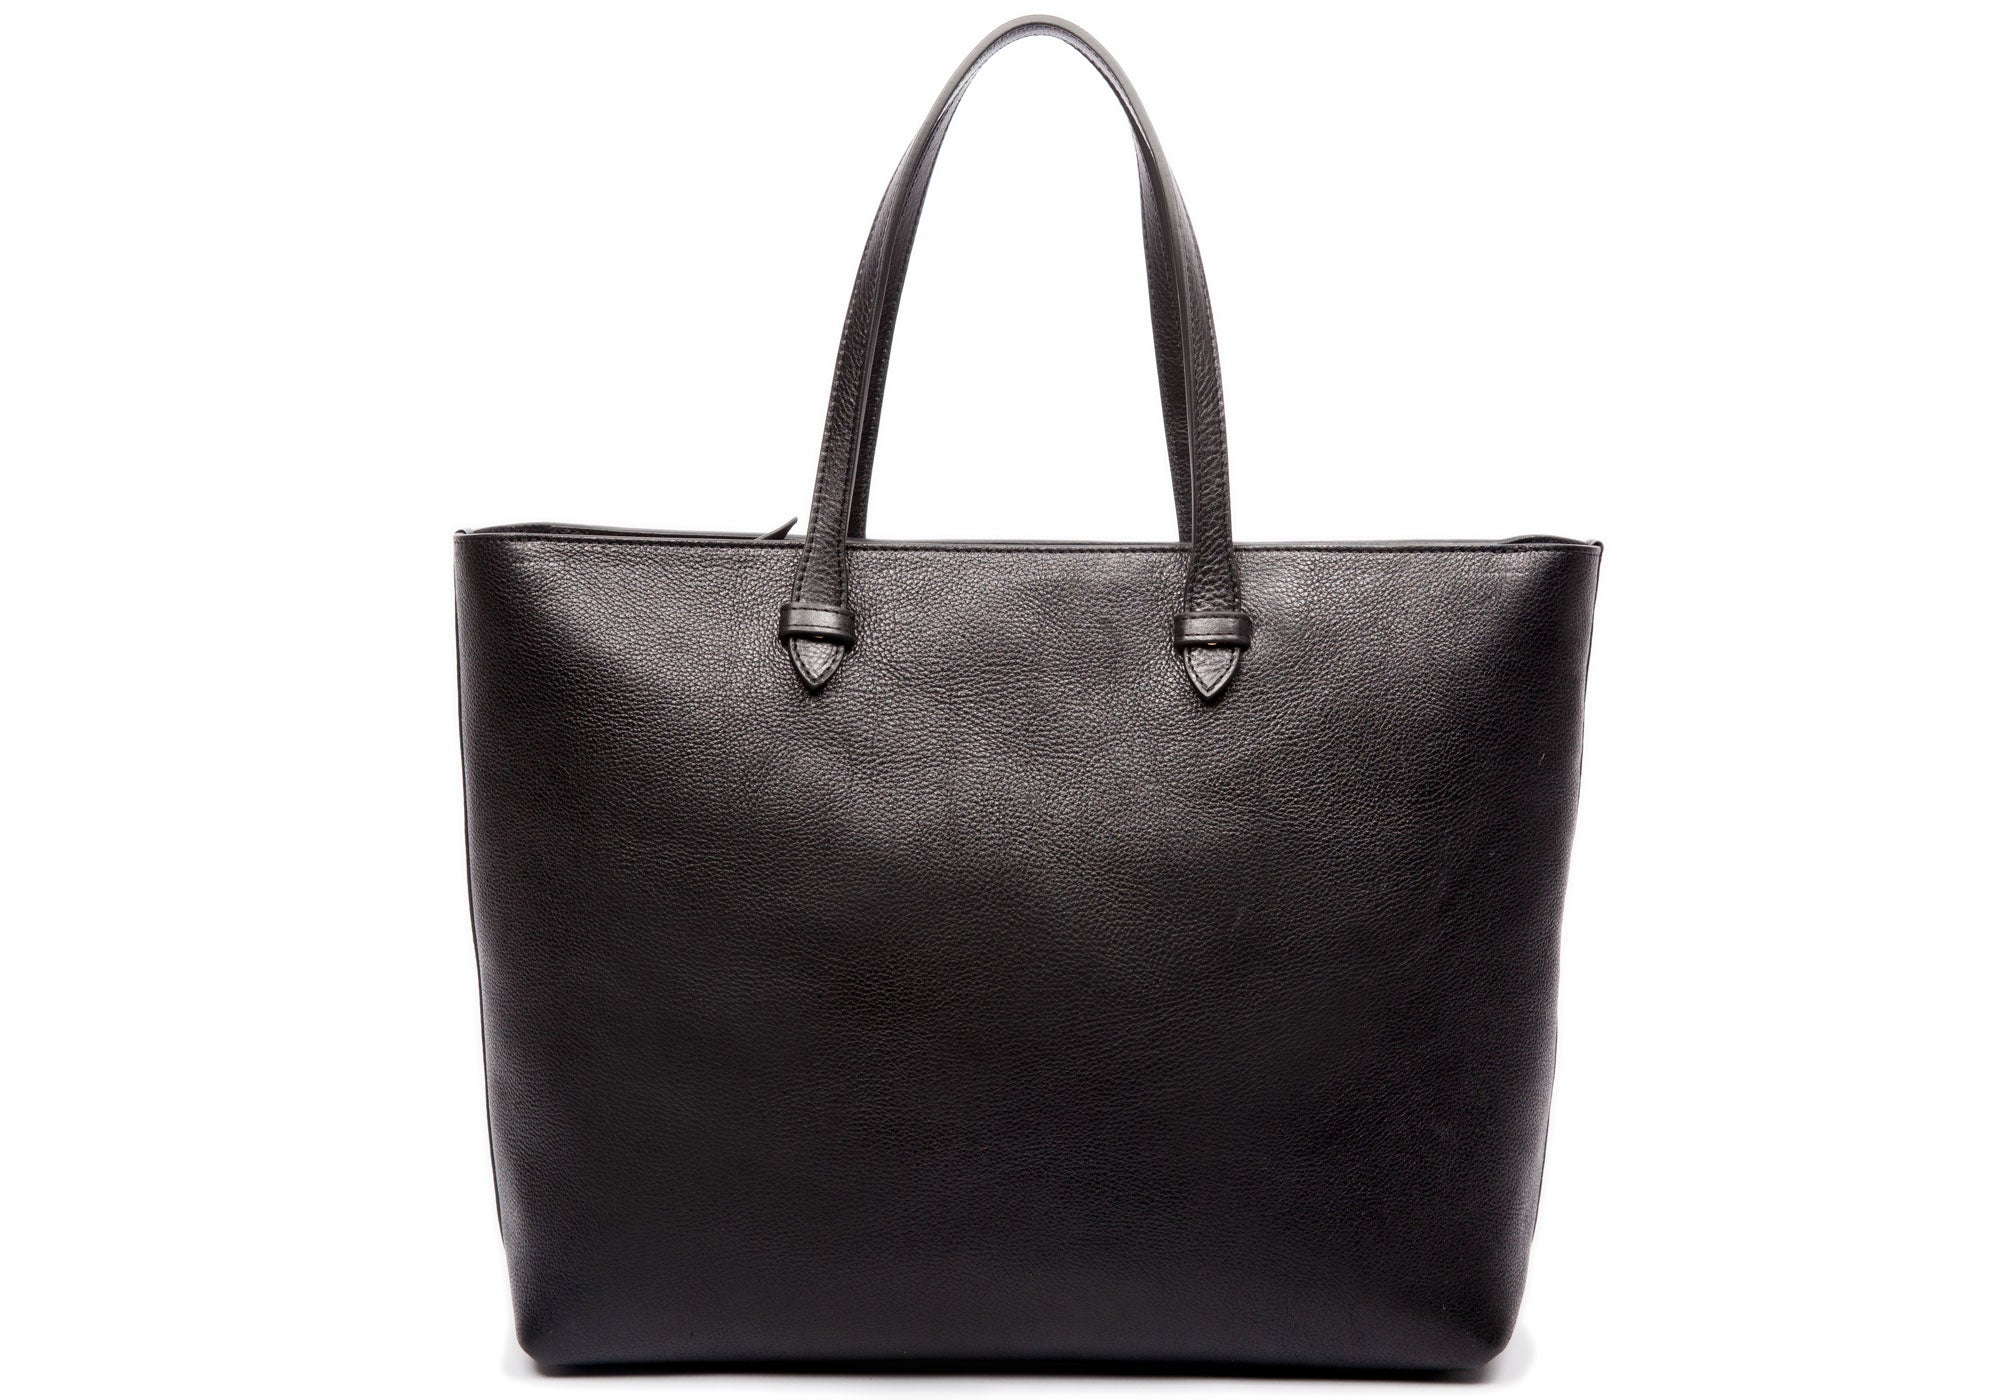 No. 12 Leather Tote Black|Front Leather View